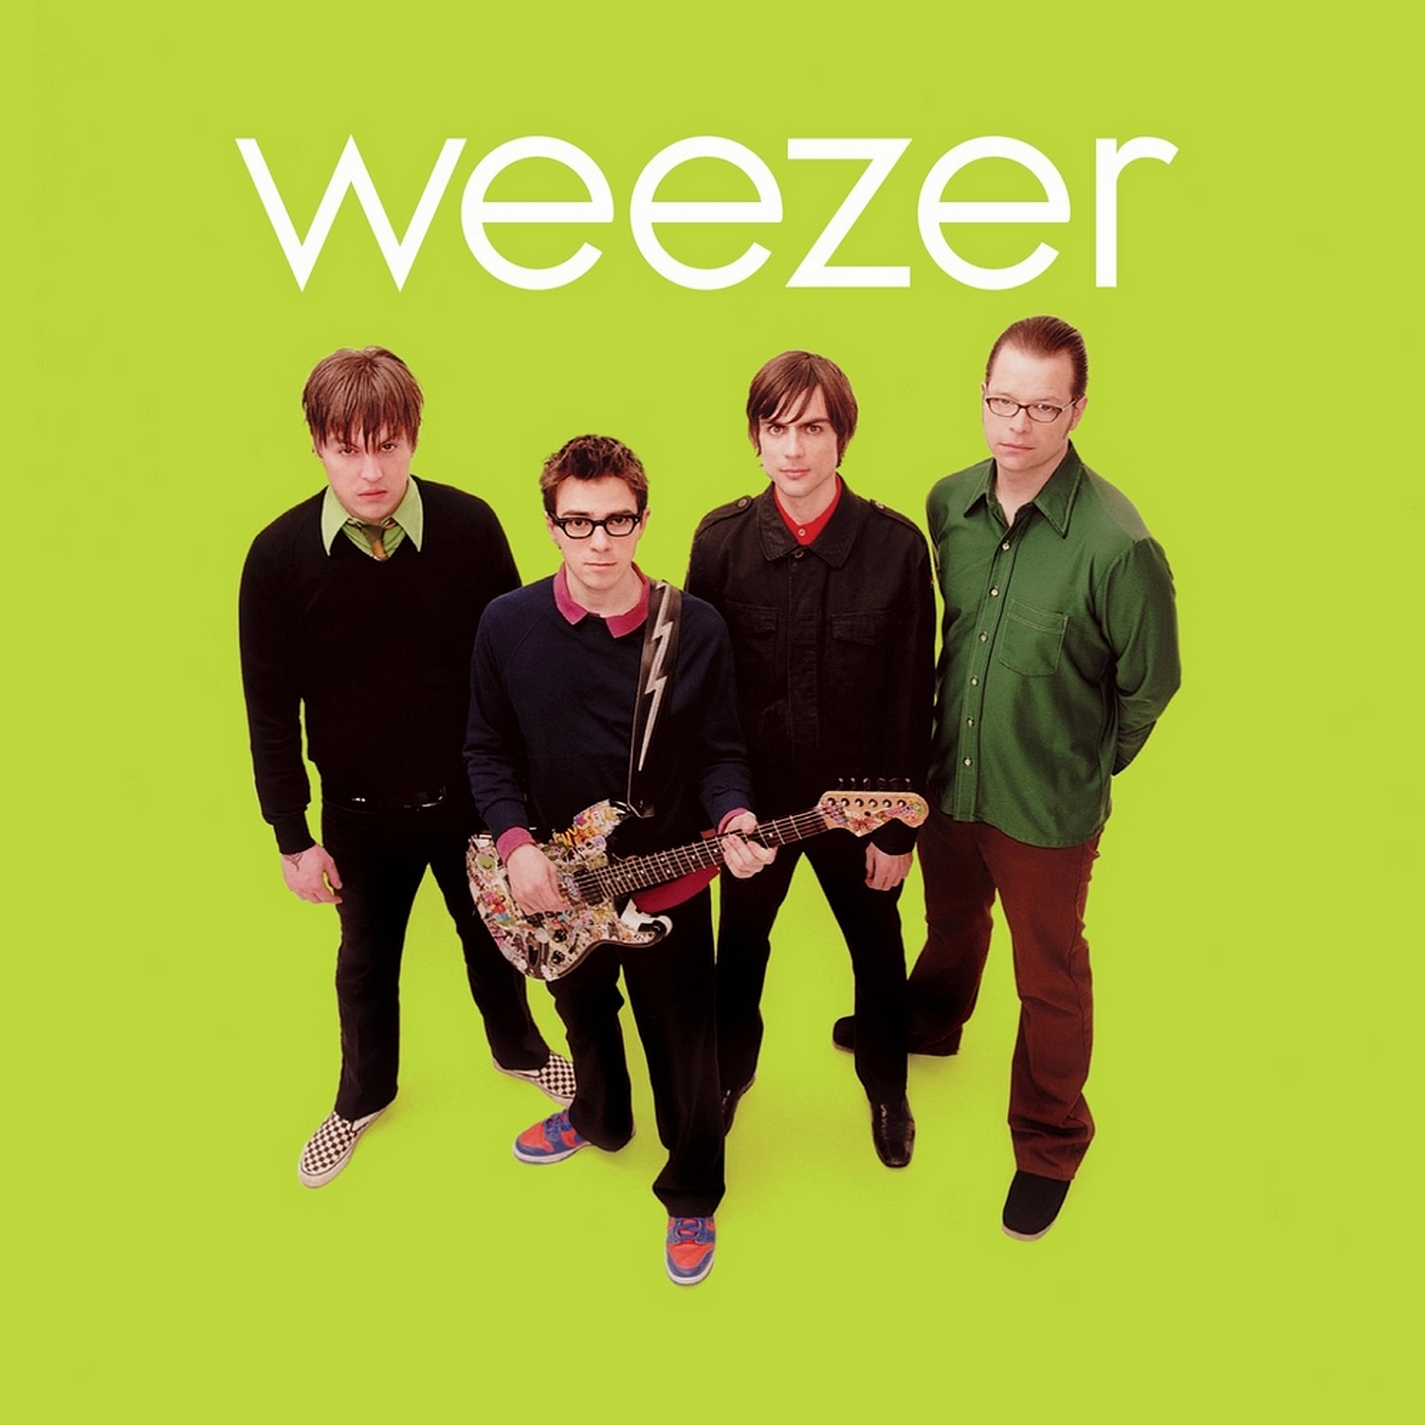 Download Lagu Full Album Mp3 Weezer Rar | My Arcop